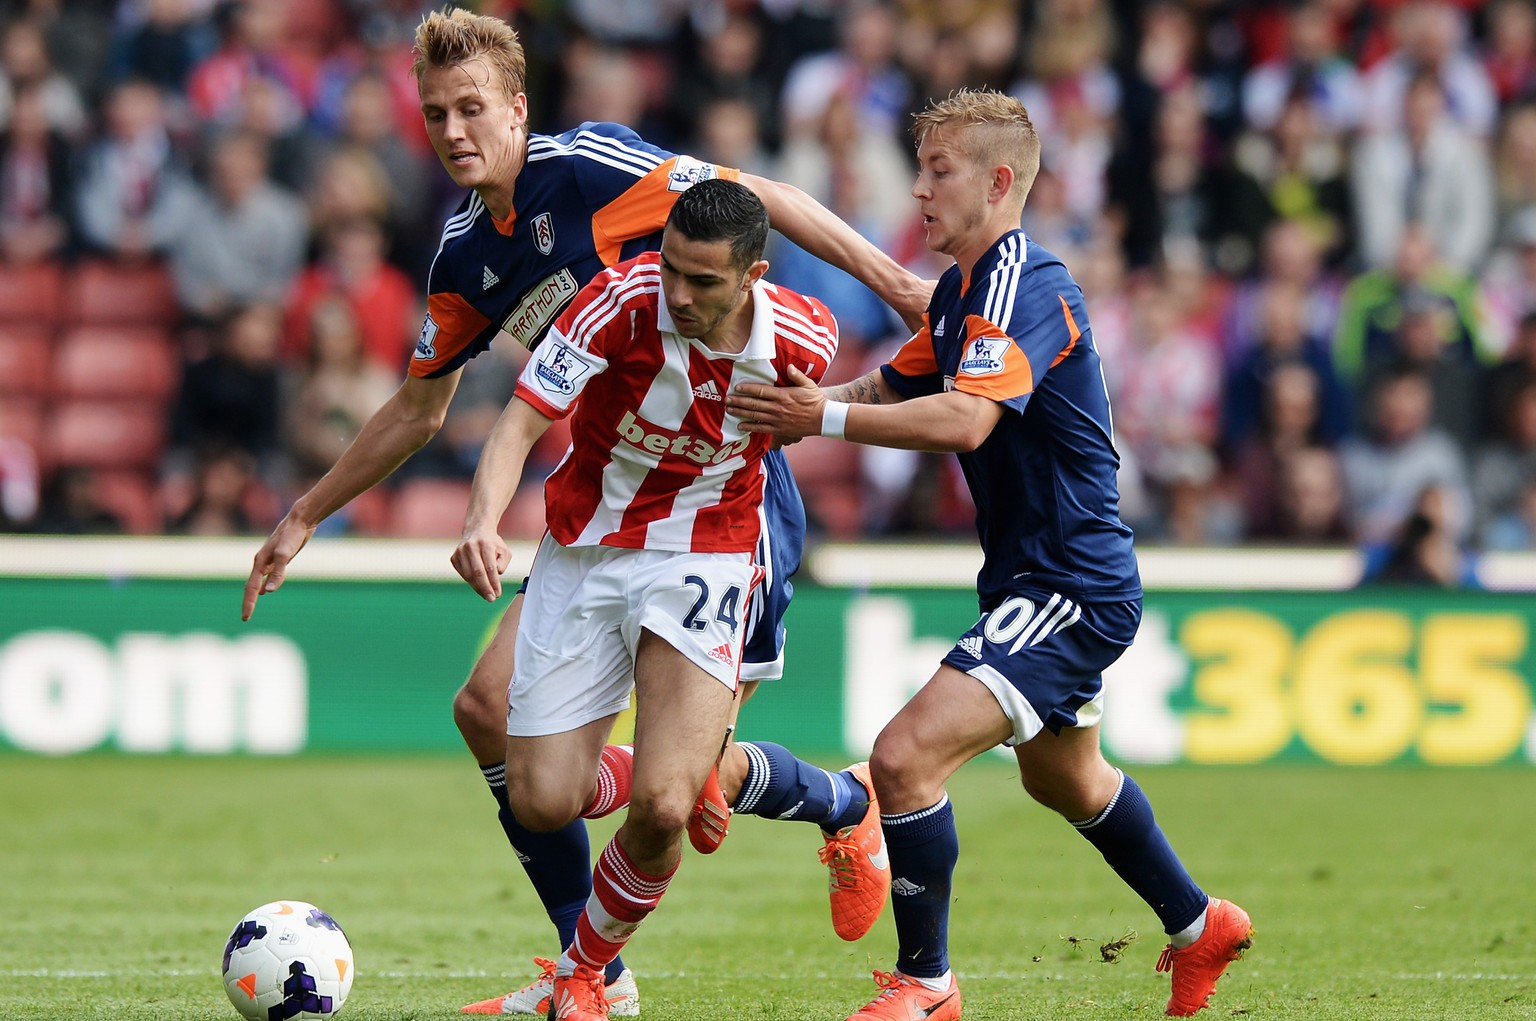 STOKE ON TRENT, ENGLAND - MAY 03:  Oussama Assaidi (C) of Stoke City is challenged by Dan Burn (L) and Lewis Holtby (R) of Fulham during the Barclays Premier League match between Stoke City and Fulham at the Britannia Stadium on May 3, 2014 in Stoke on Trent, England.  (Photo by Gareth Copley/Getty Images)